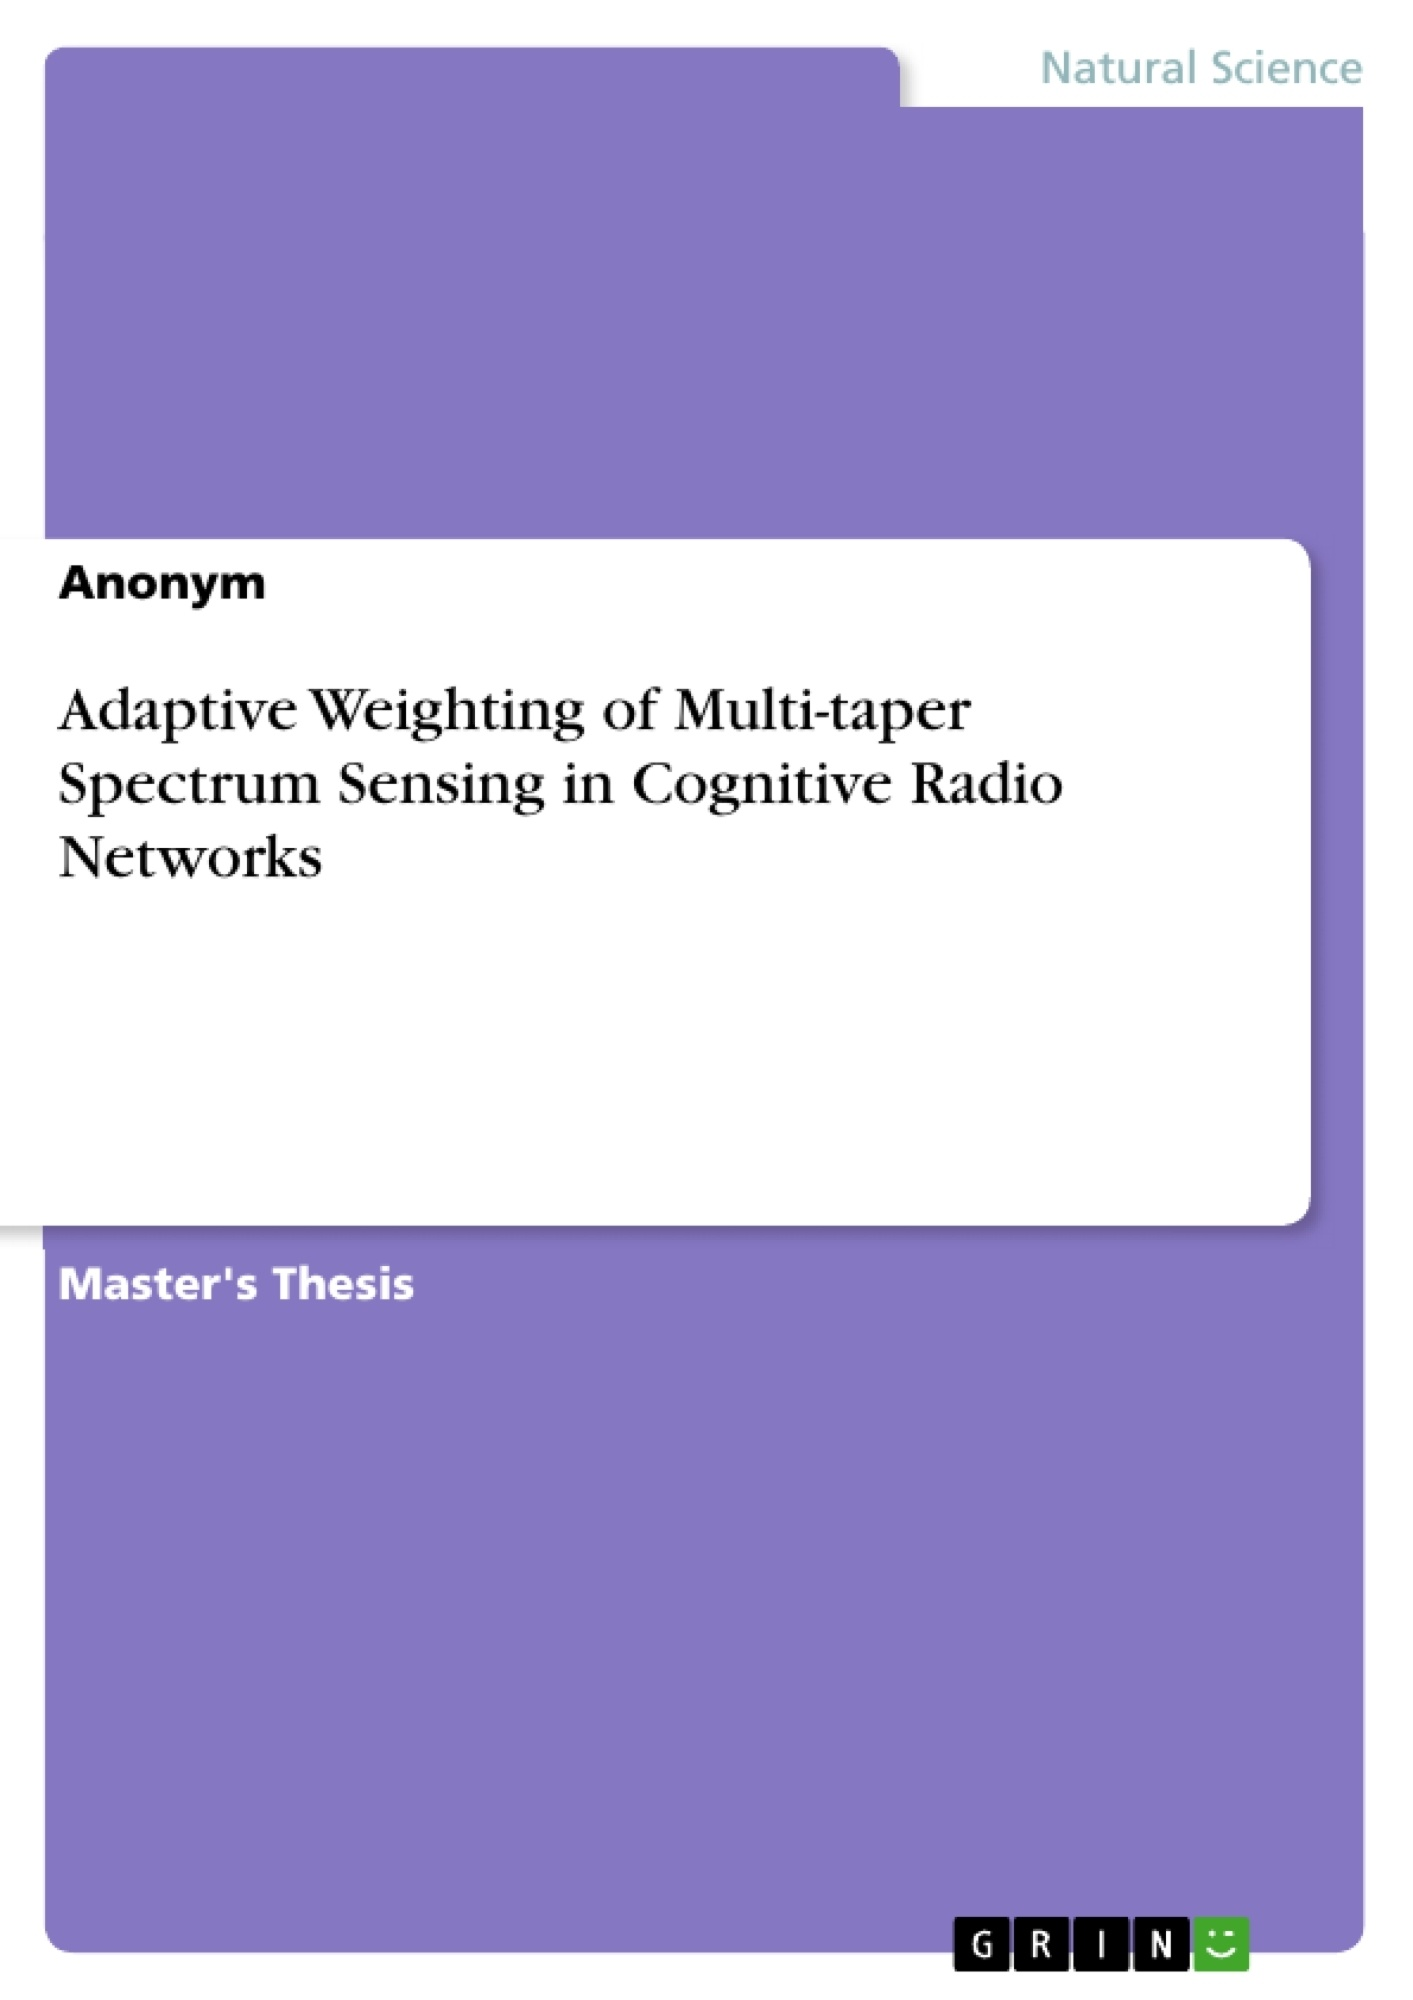 Title: Adaptive Weighting of Multi-taper Spectrum Sensing in Cognitive Radio Networks